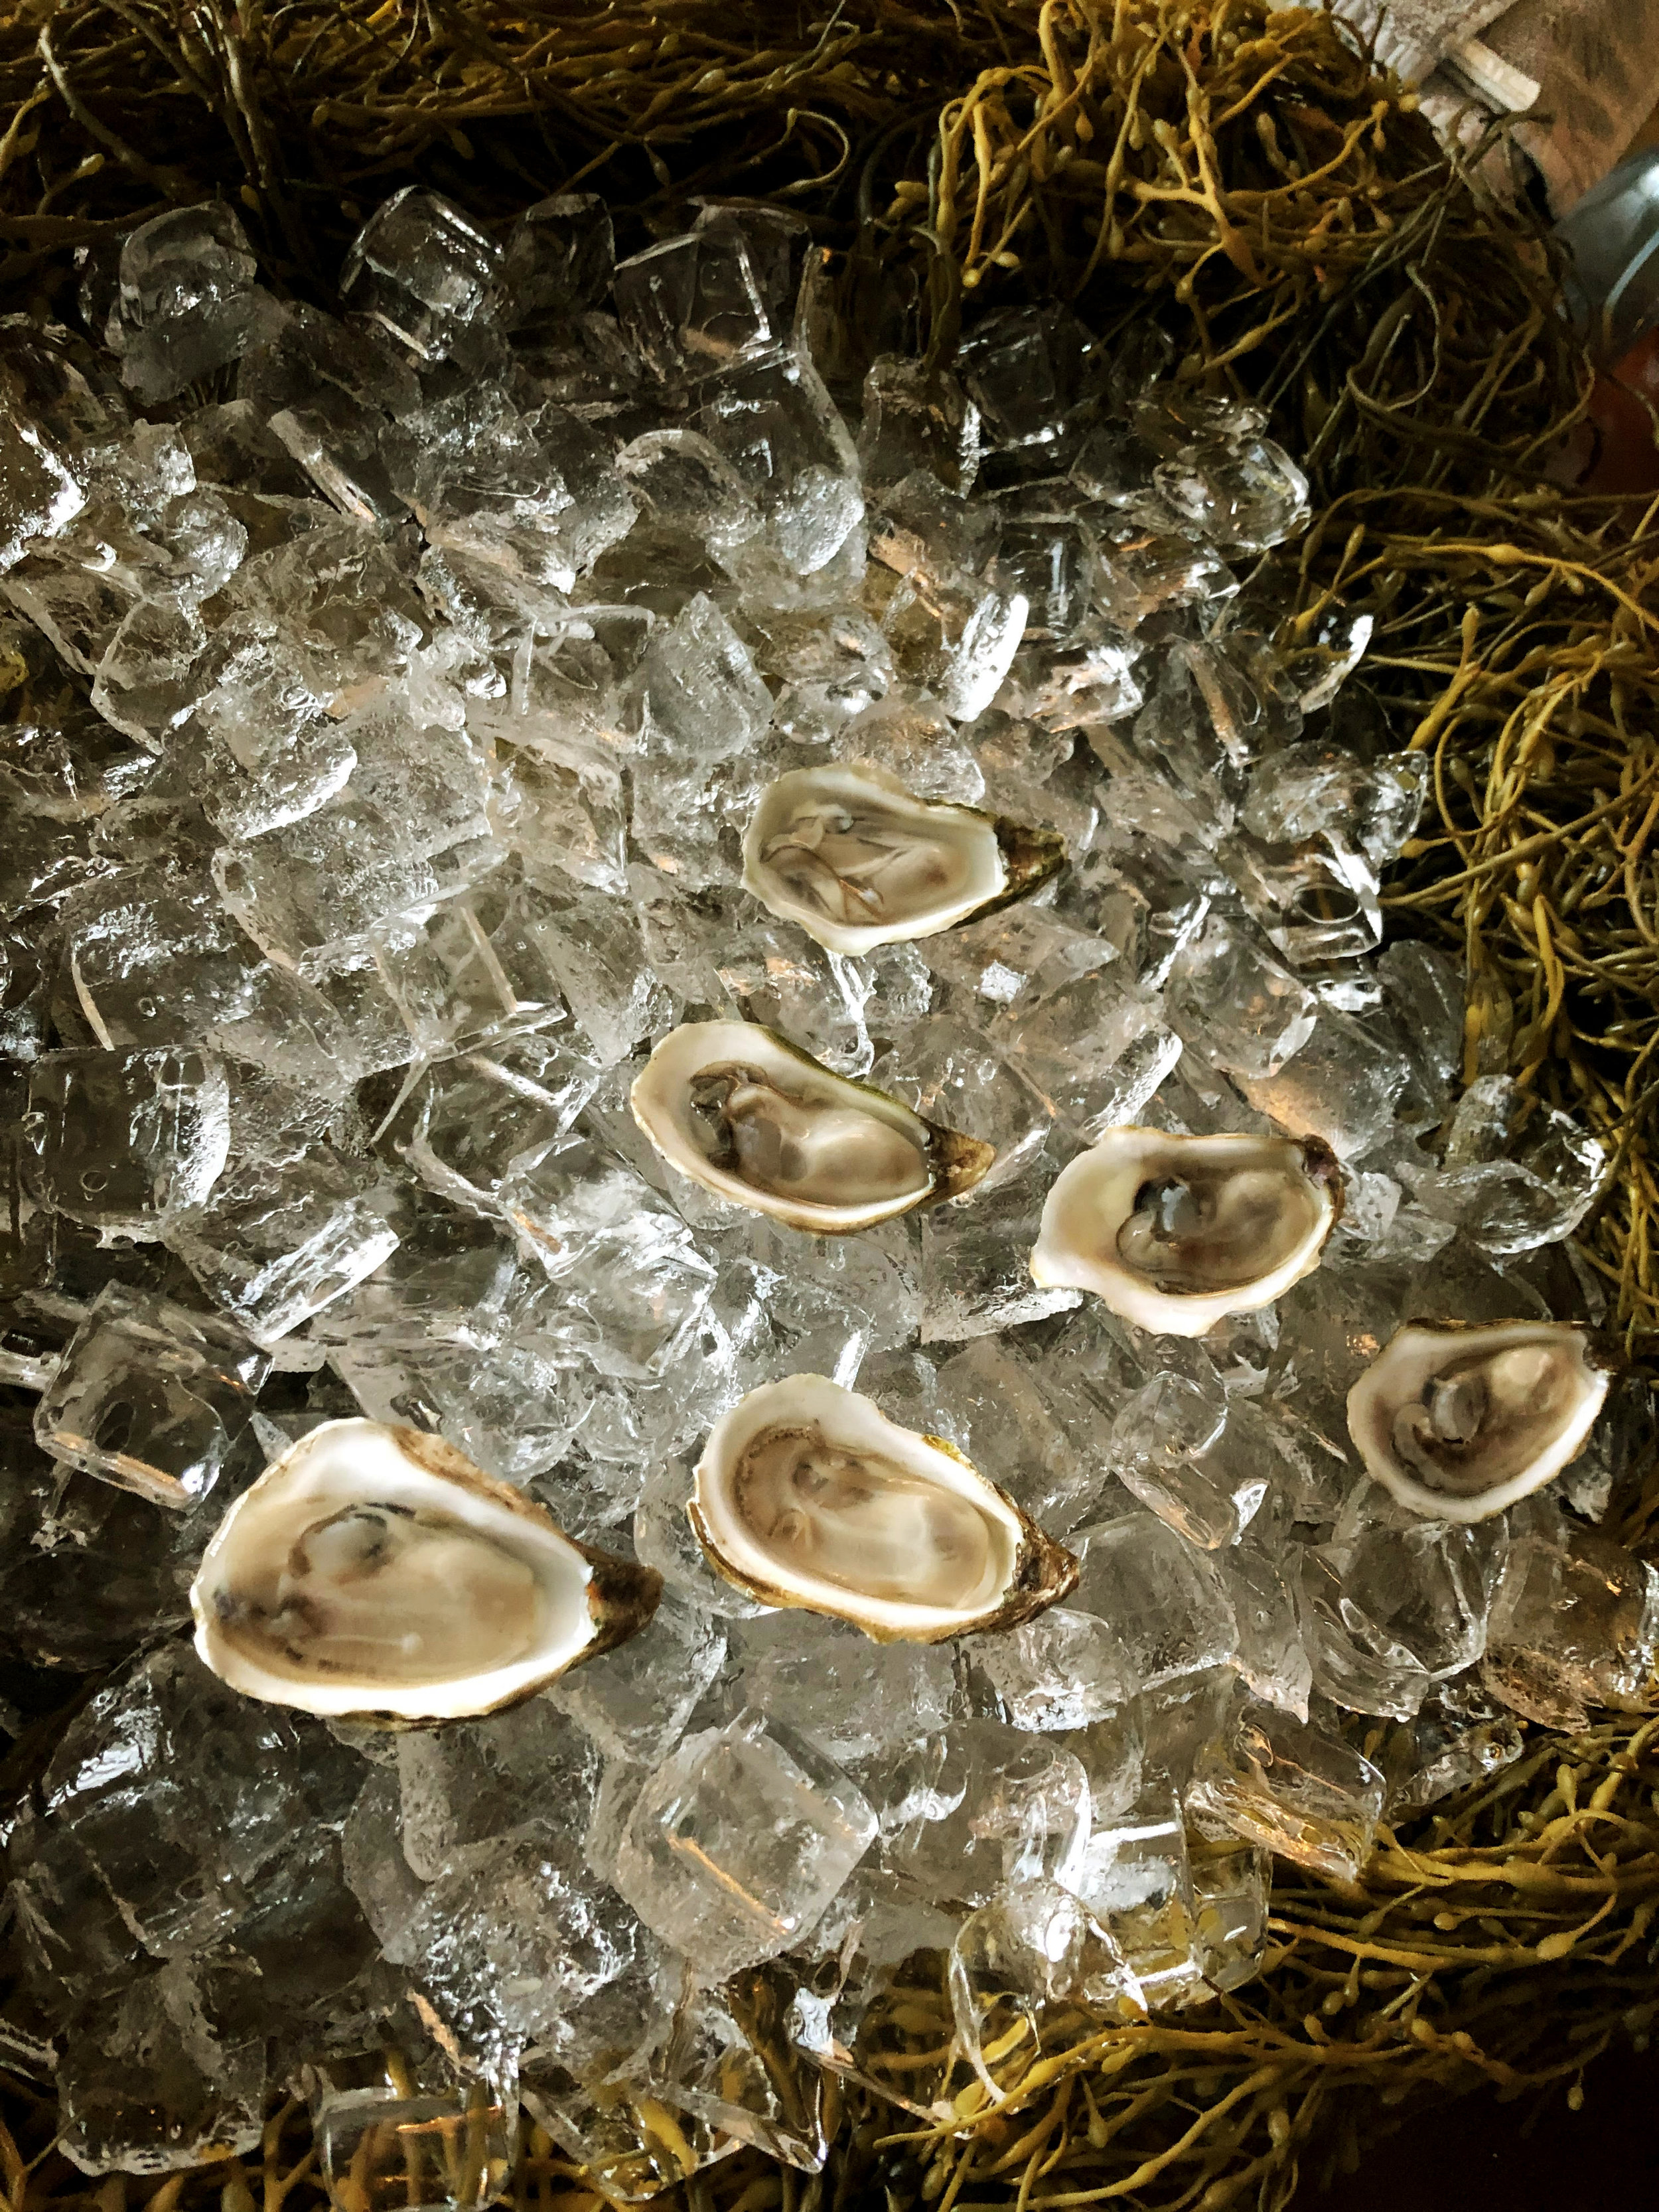 mussels-on-ice-and-seaweed-iphone.jpg